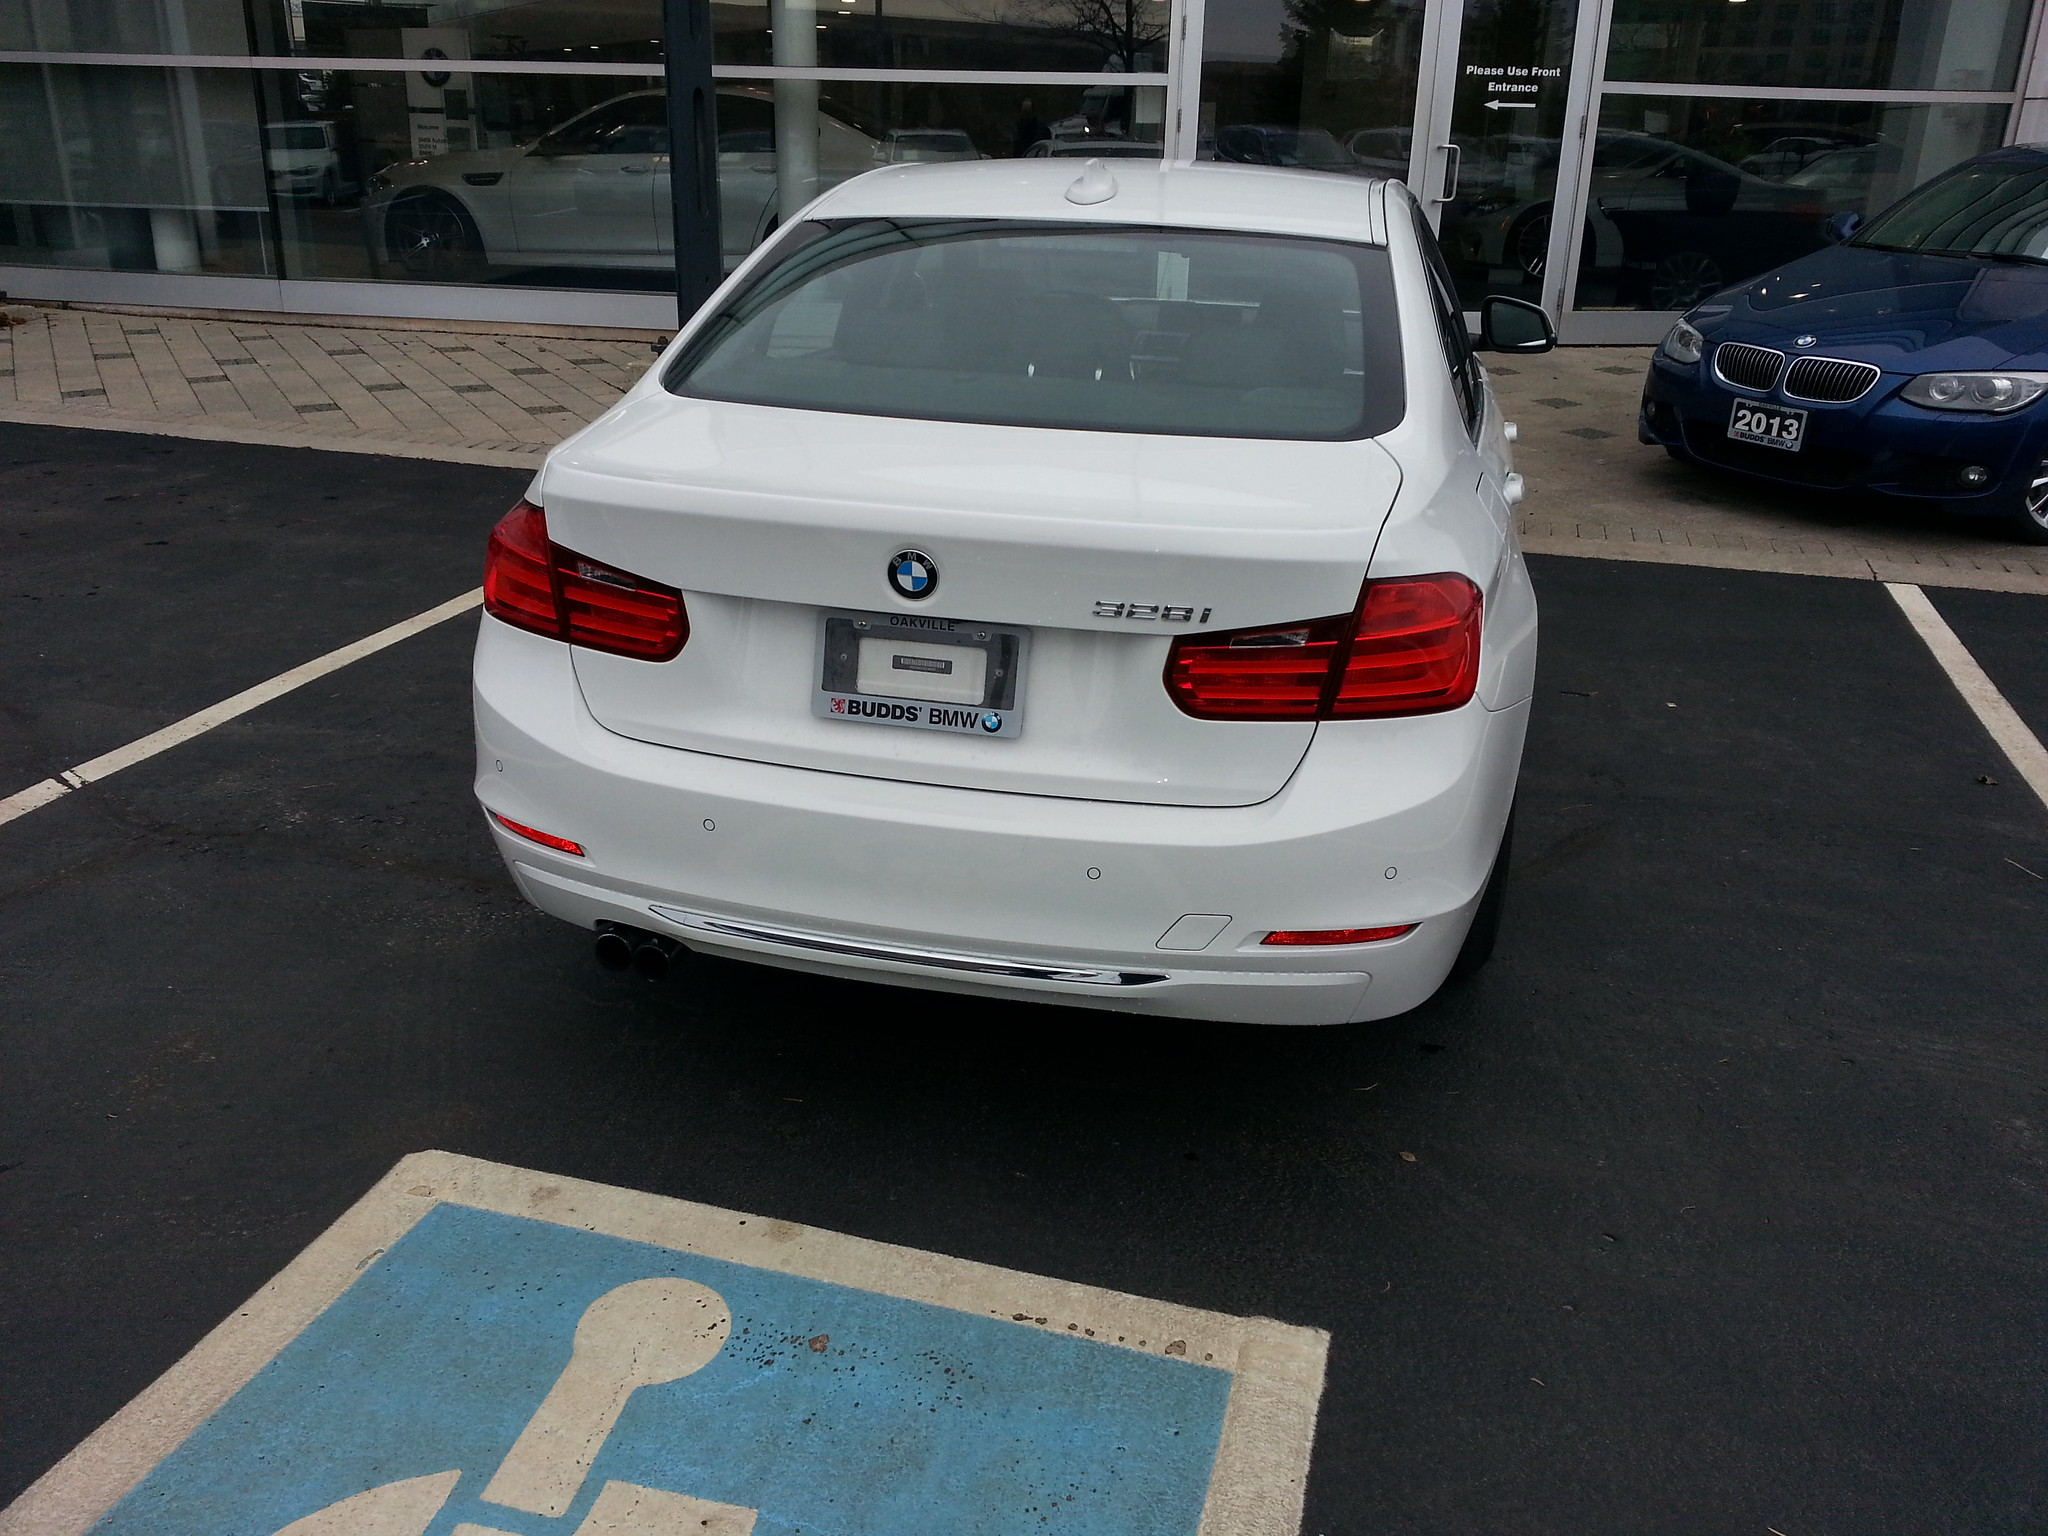 2012 bmw 328i luxury line by john on flickr